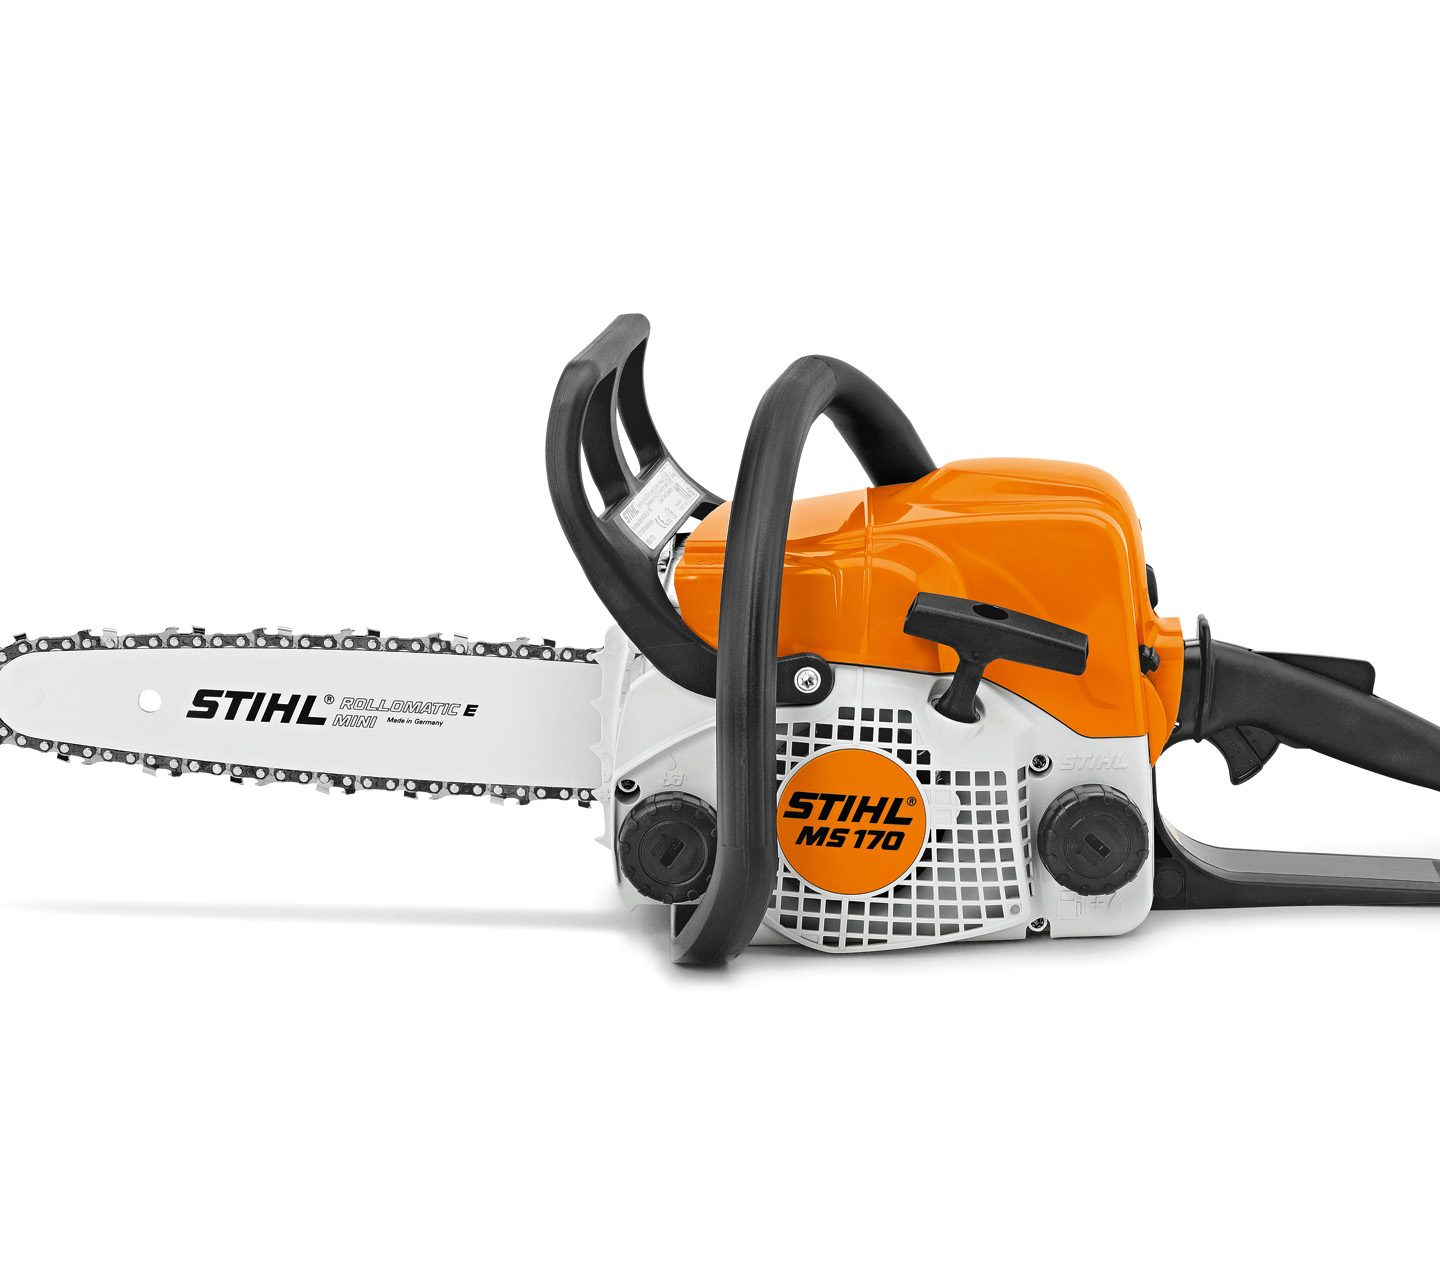 MS 170 - 1.2 KW/1.6 HP DOMESTICPETROL CHAINSAW